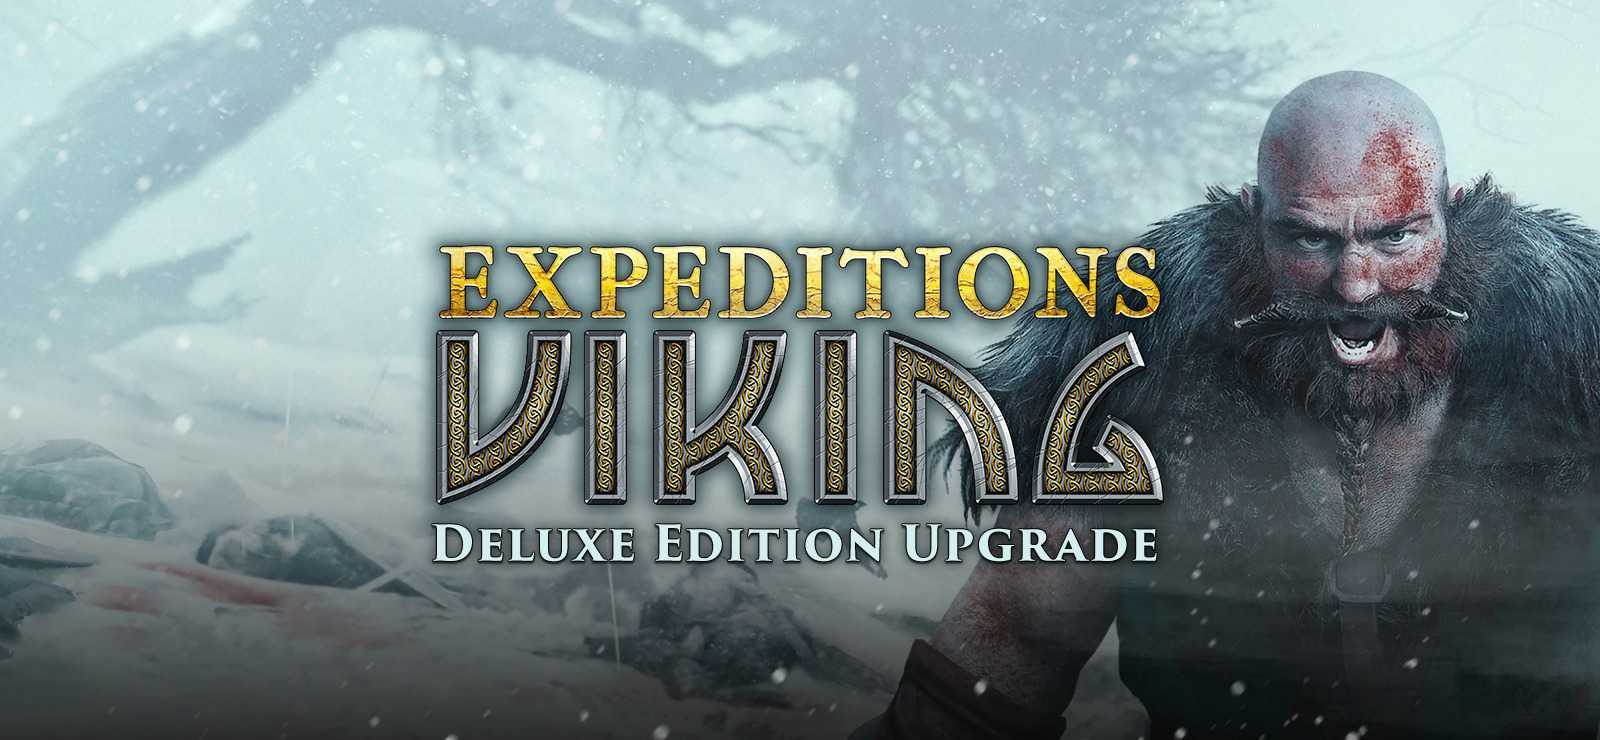 Expeditions: Viking Deluxe Edition Upgrade